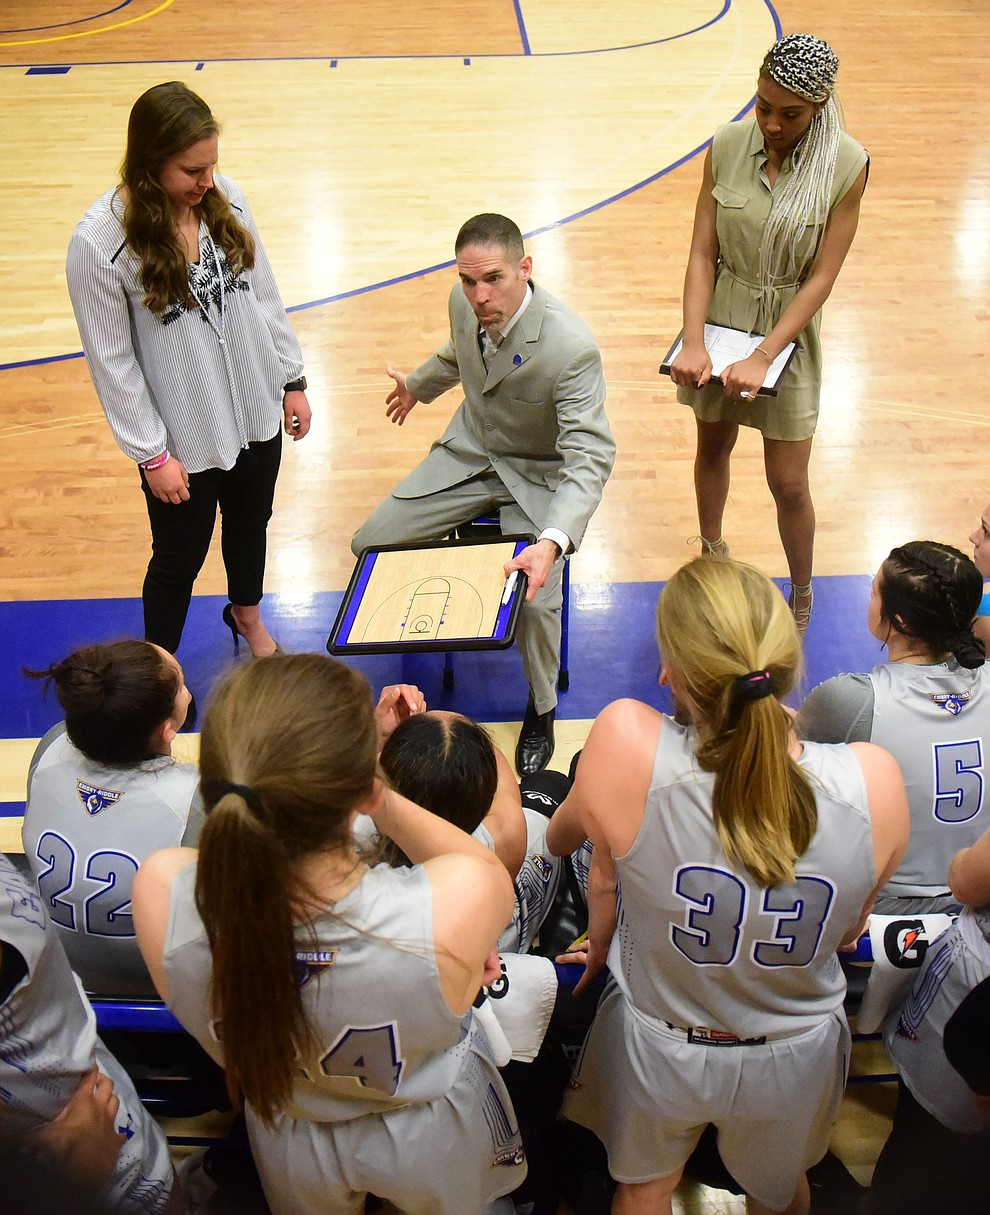 Embry Riddle Head Coach Mike Trujillo talks to players during a timeout as the Eagles face the Lincoln Christian Red Lions Thursday, Dec. 20, 2018 in Prescott. (Les Stukenberg/Courier).